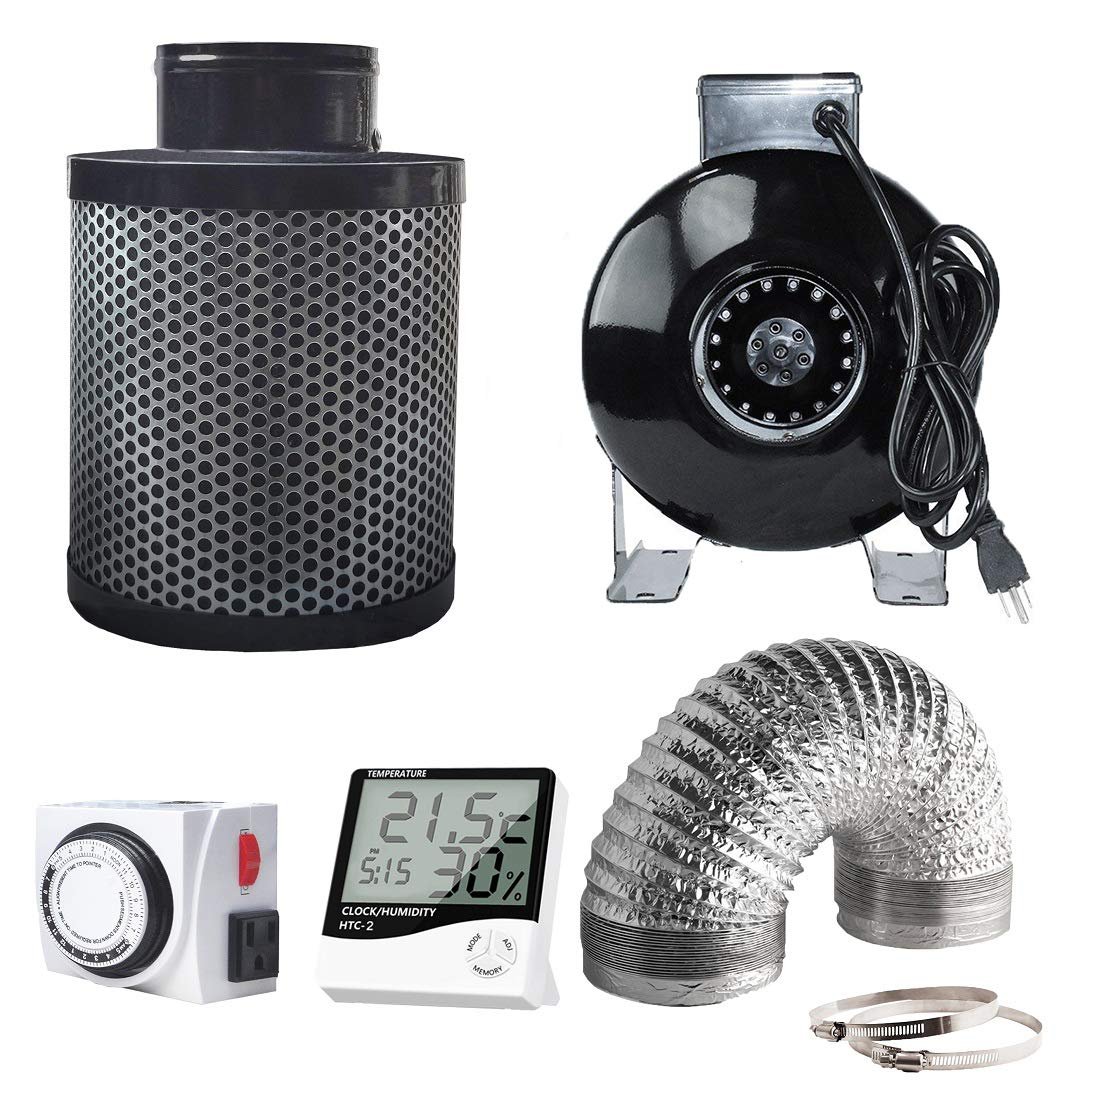 cdmall 4'' Inline Fan Carbon Filter Ducting Combo + Variable Fan Speed Controller + Hygrometer Thermometer + 24 Hour Timer Outlet for Hydroponic Grow Tent Ventilation System (4'' Ventilation Kit) by cdmall